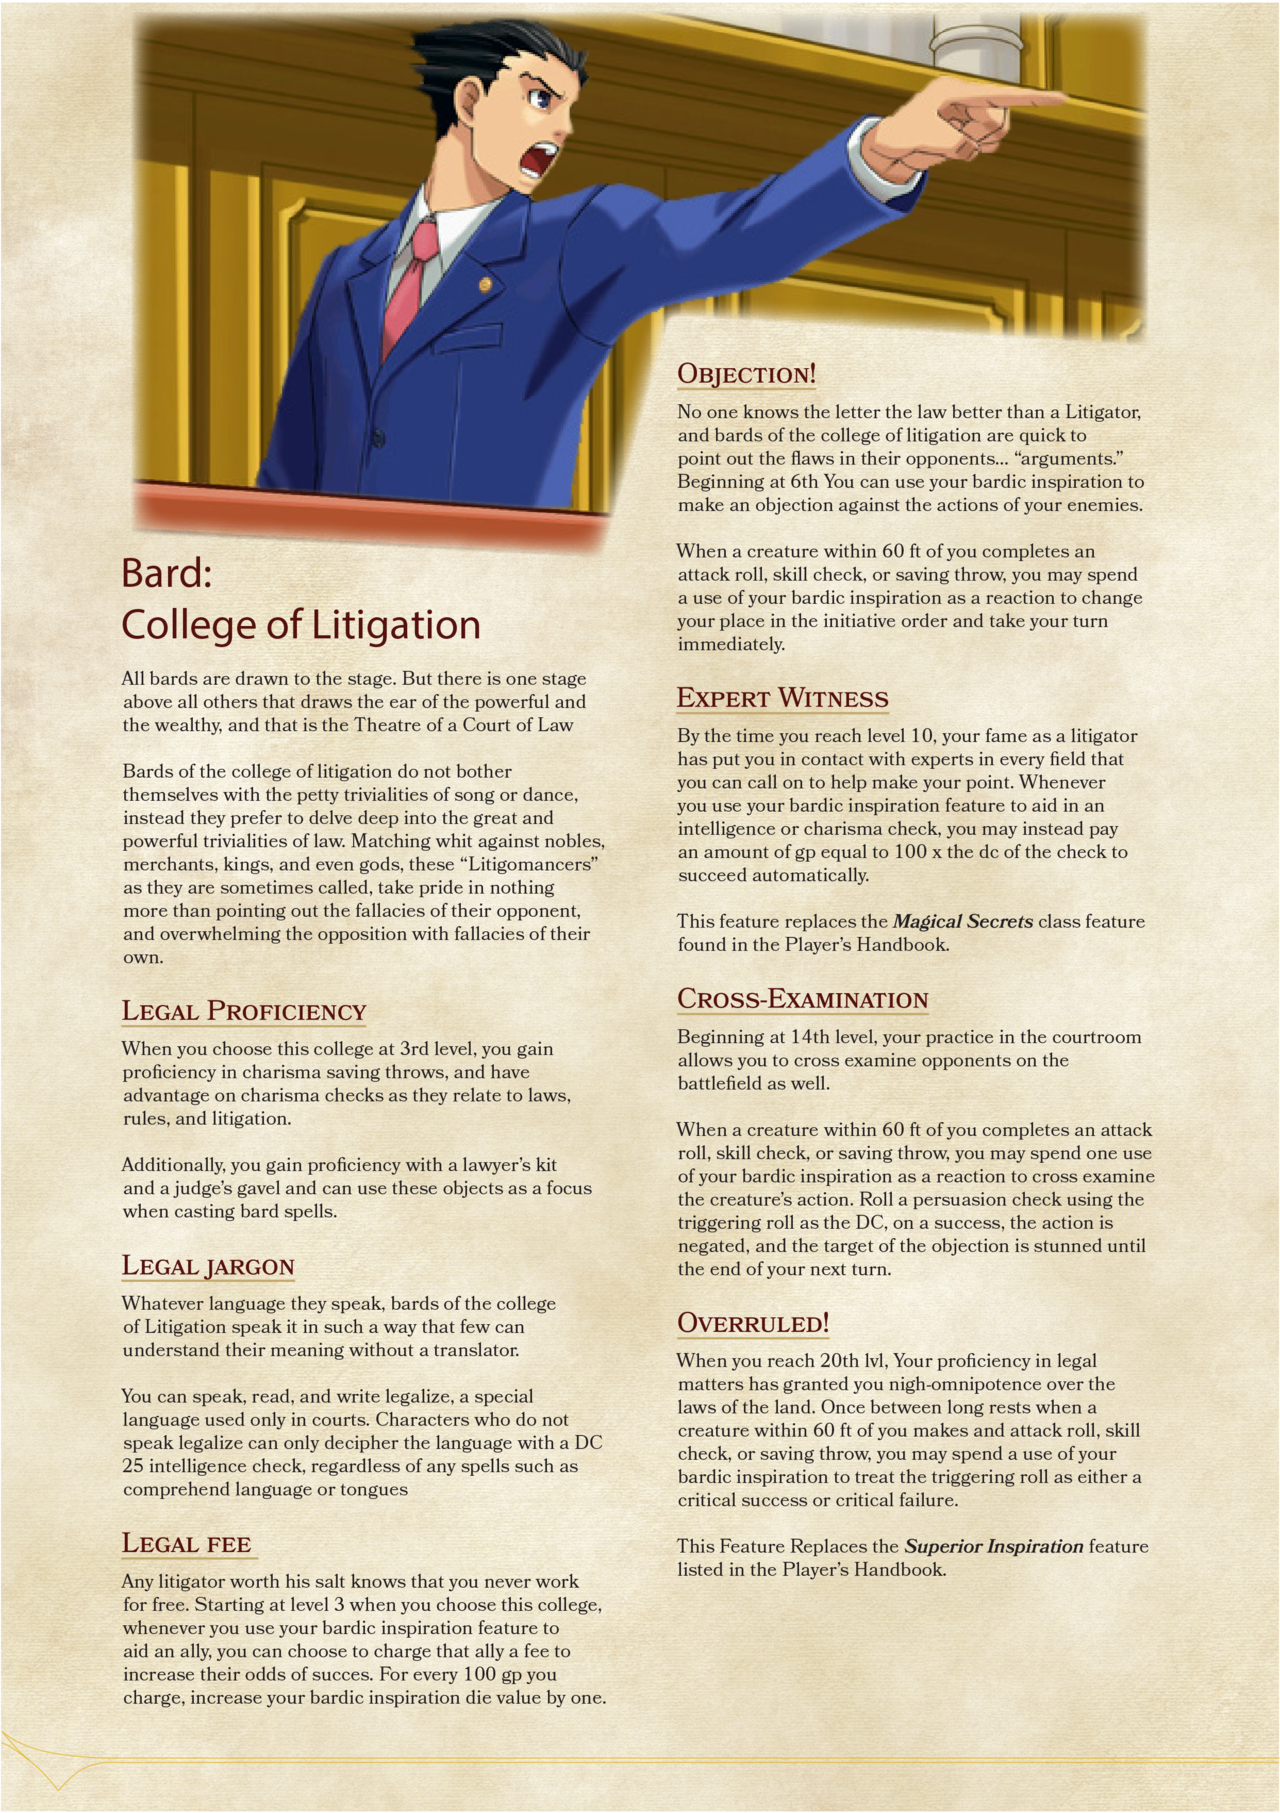 Pin by Jason Wolf on 5th edition | Bard college, Dnd 5e homebrew